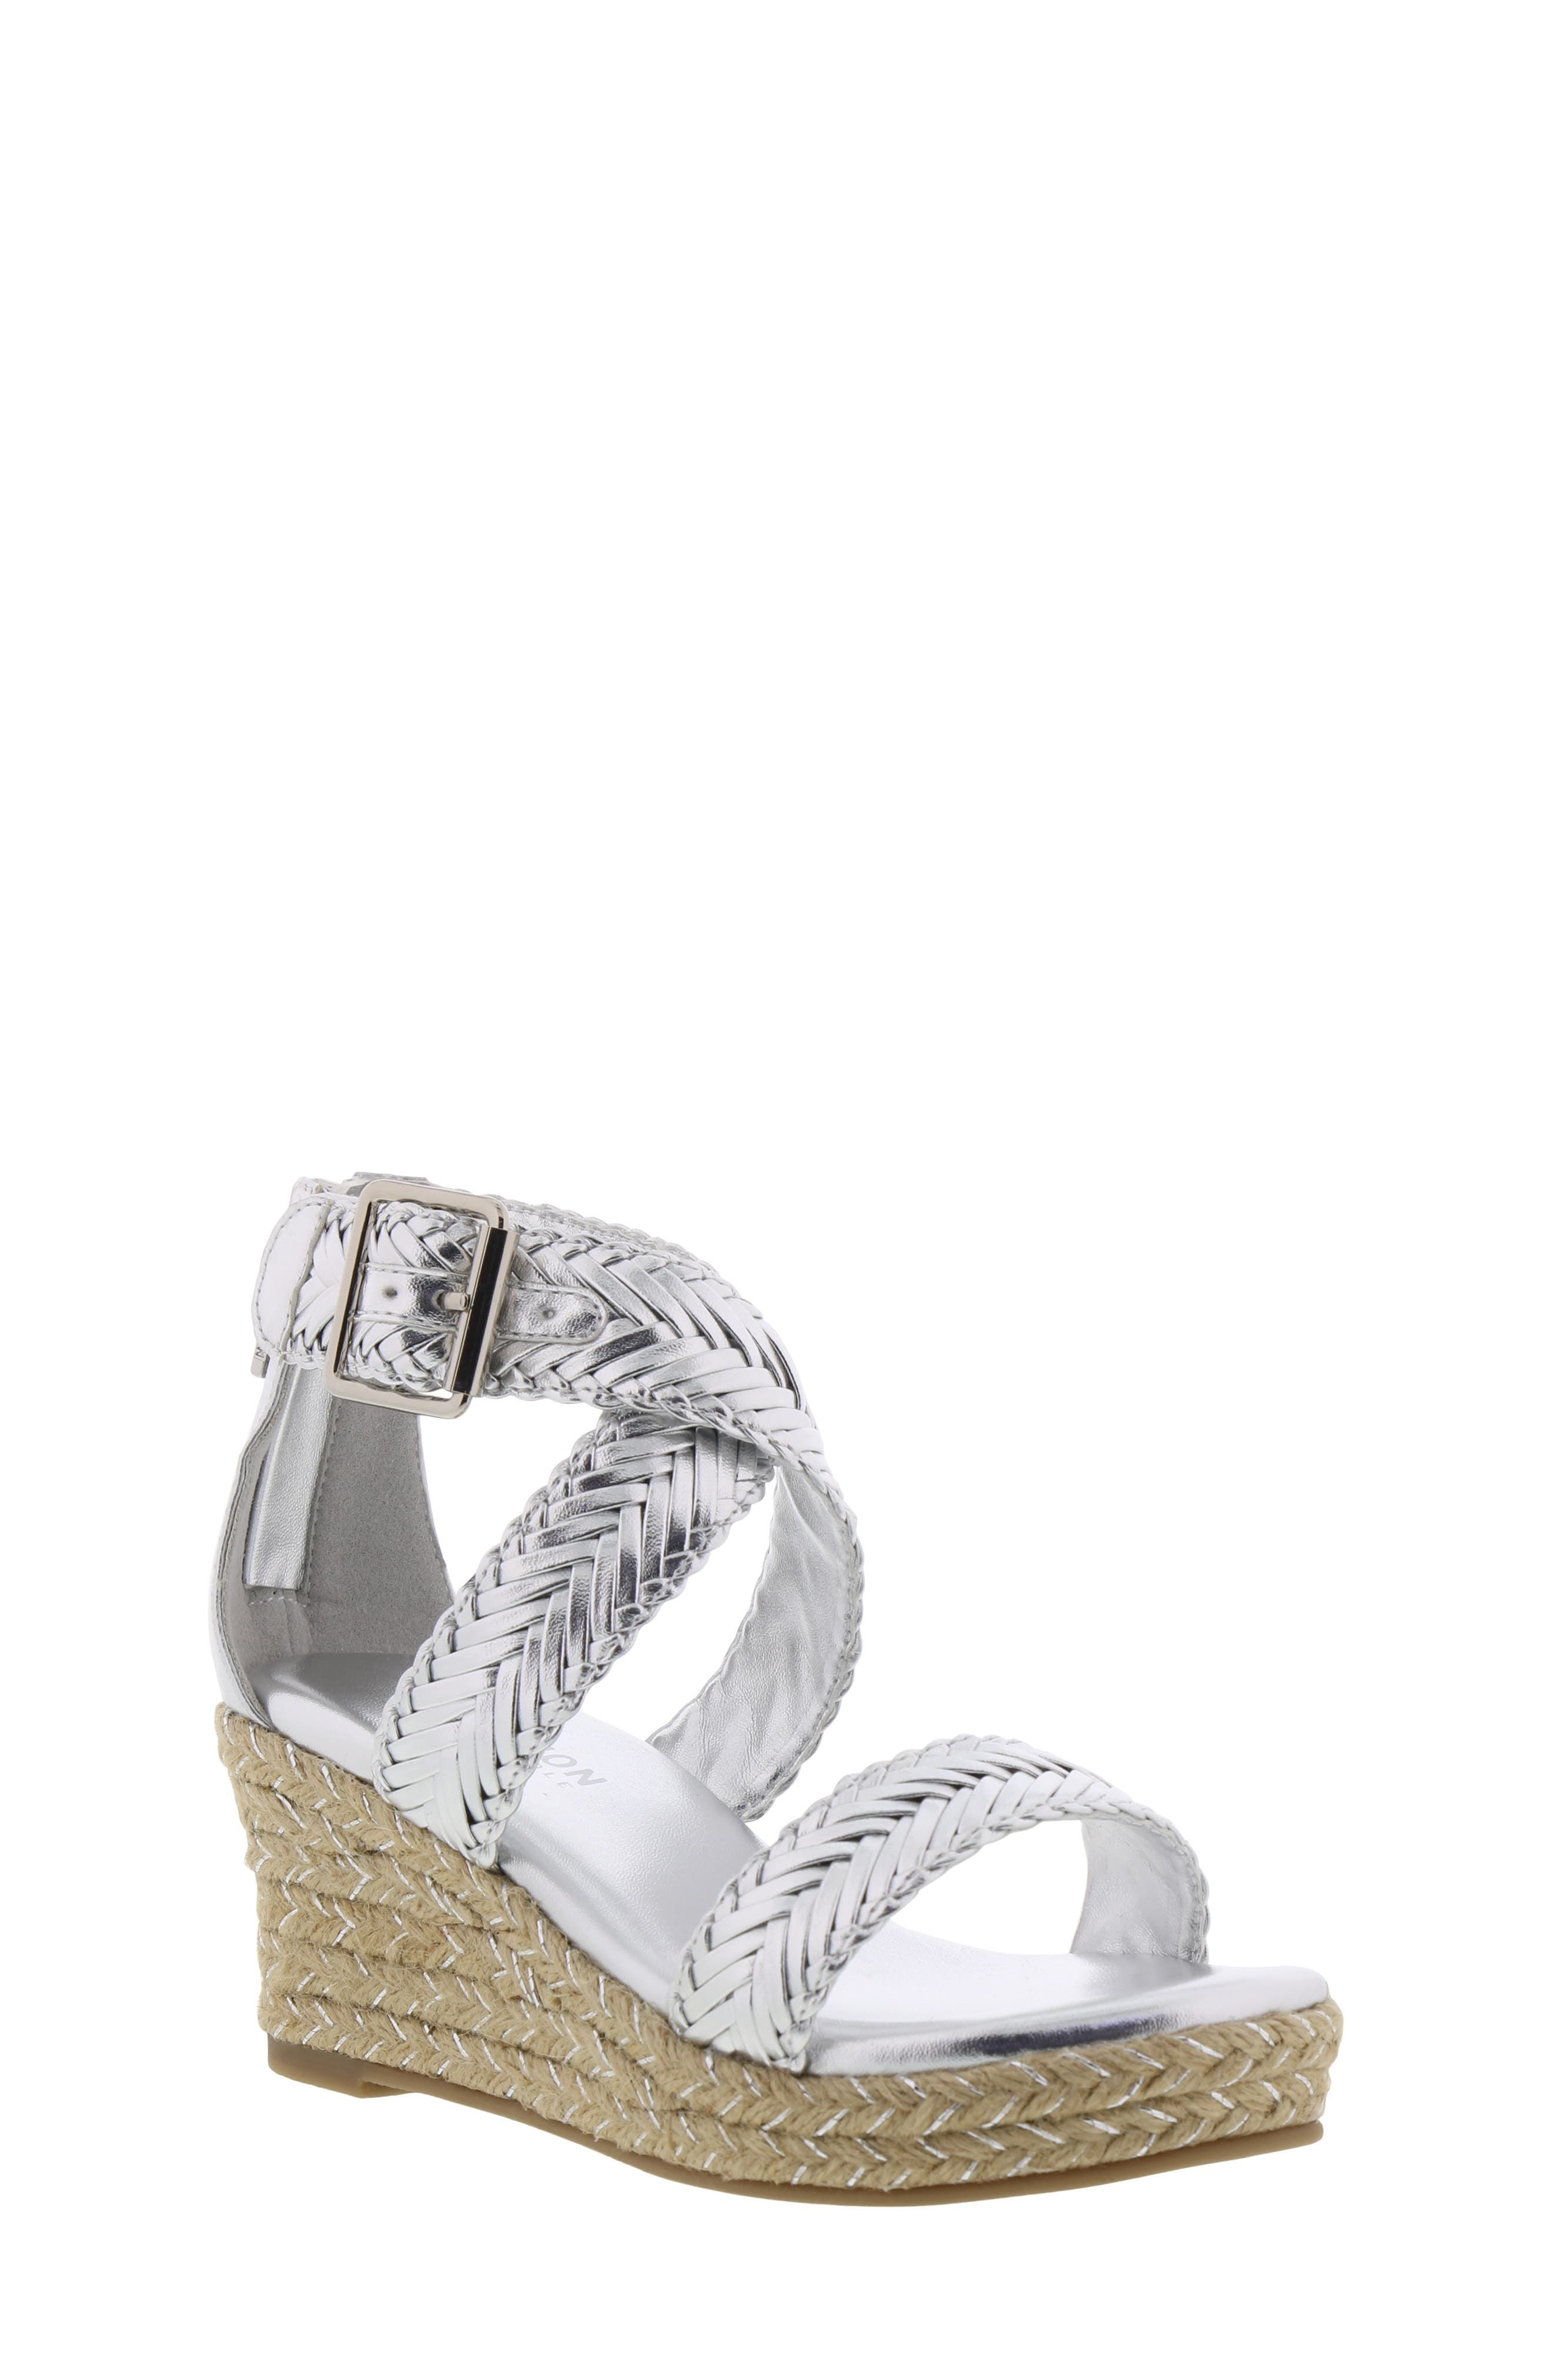 REACTION KENNETH COLE, Reed Sway Metallic Wedge Sandal, Main thumbnail 1, color, SILVER